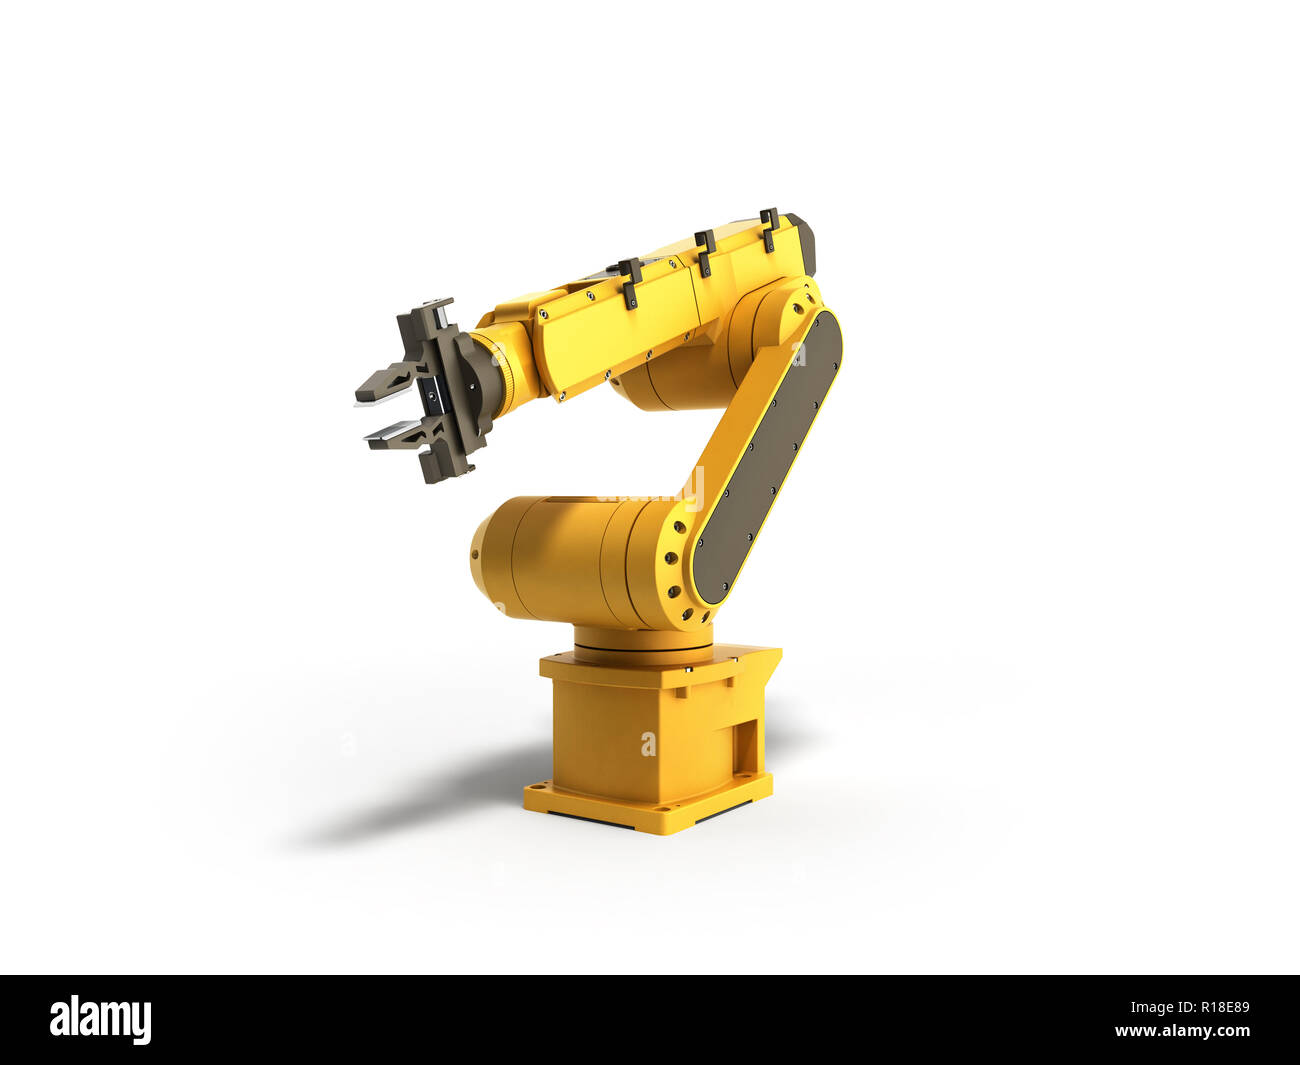 Industrial robot on white background 3D rendering - Stock Image